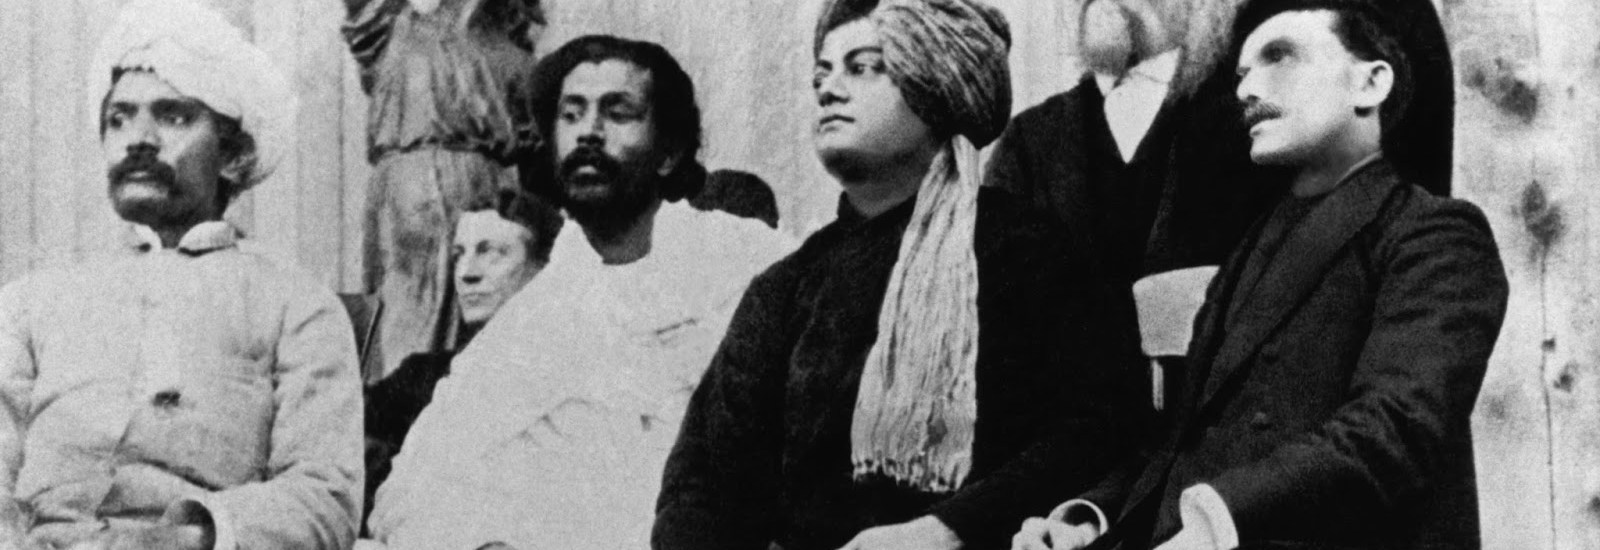 Vivekananda's Message to the West and the Historic September 11 Speech